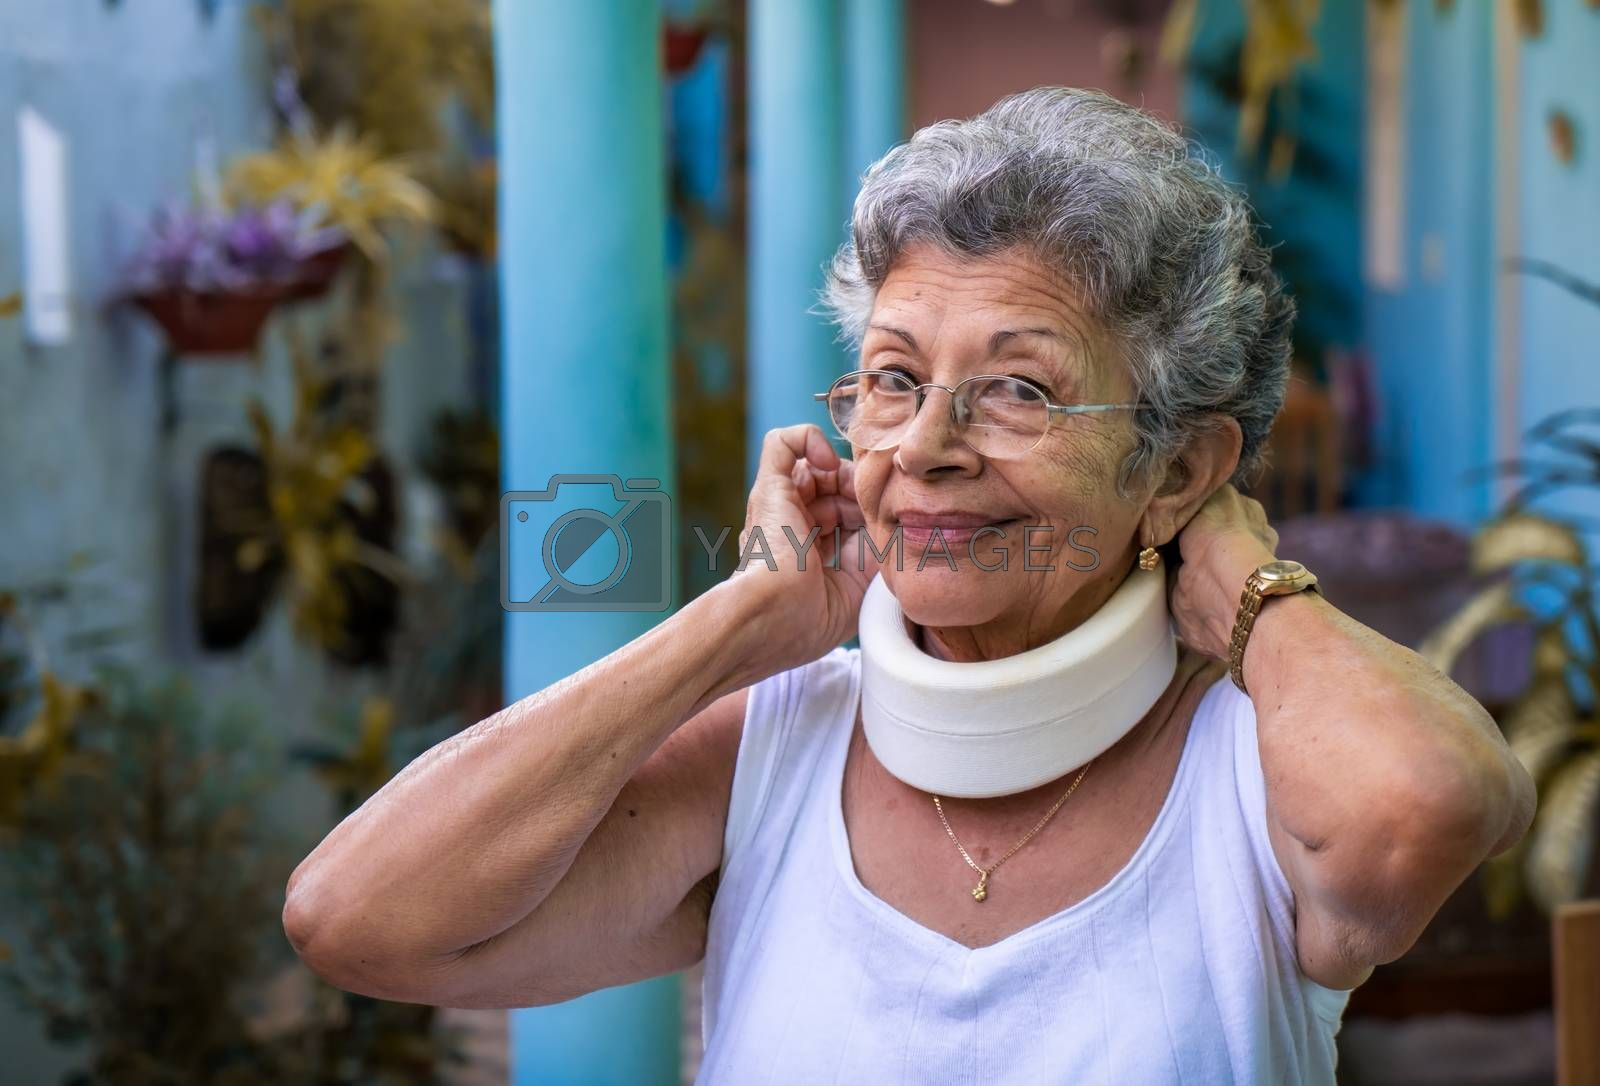 Smiling elderly woman putting on homemade looking cervical immobilizer collar